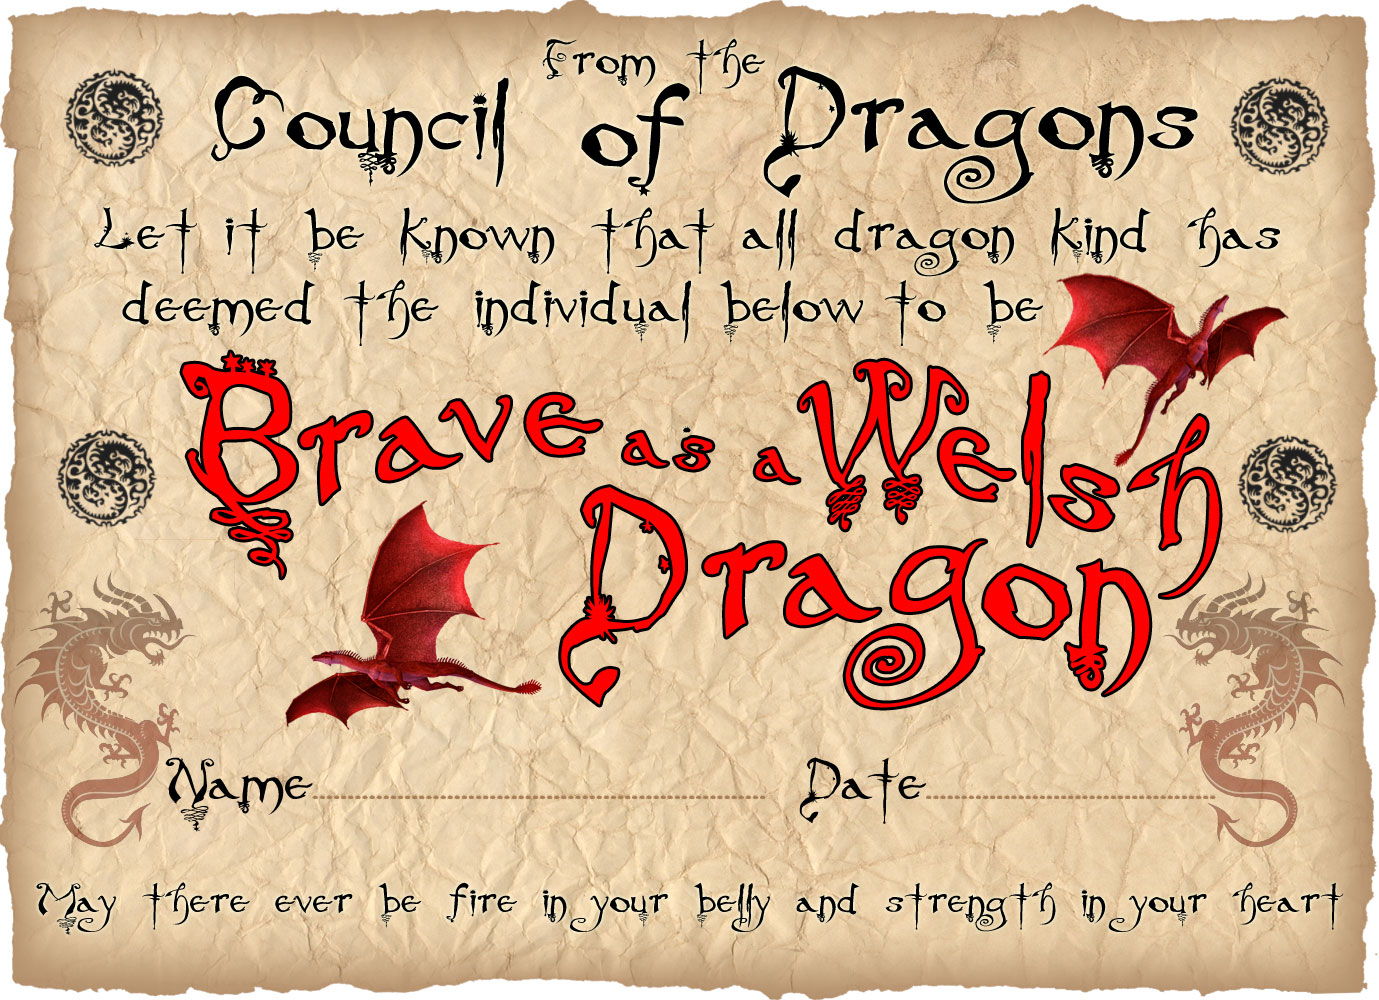 This is a printable certificate for children, saying that they are as brave as a Welsh dragon. Useful for St David's Day or any other Welsh celebration.